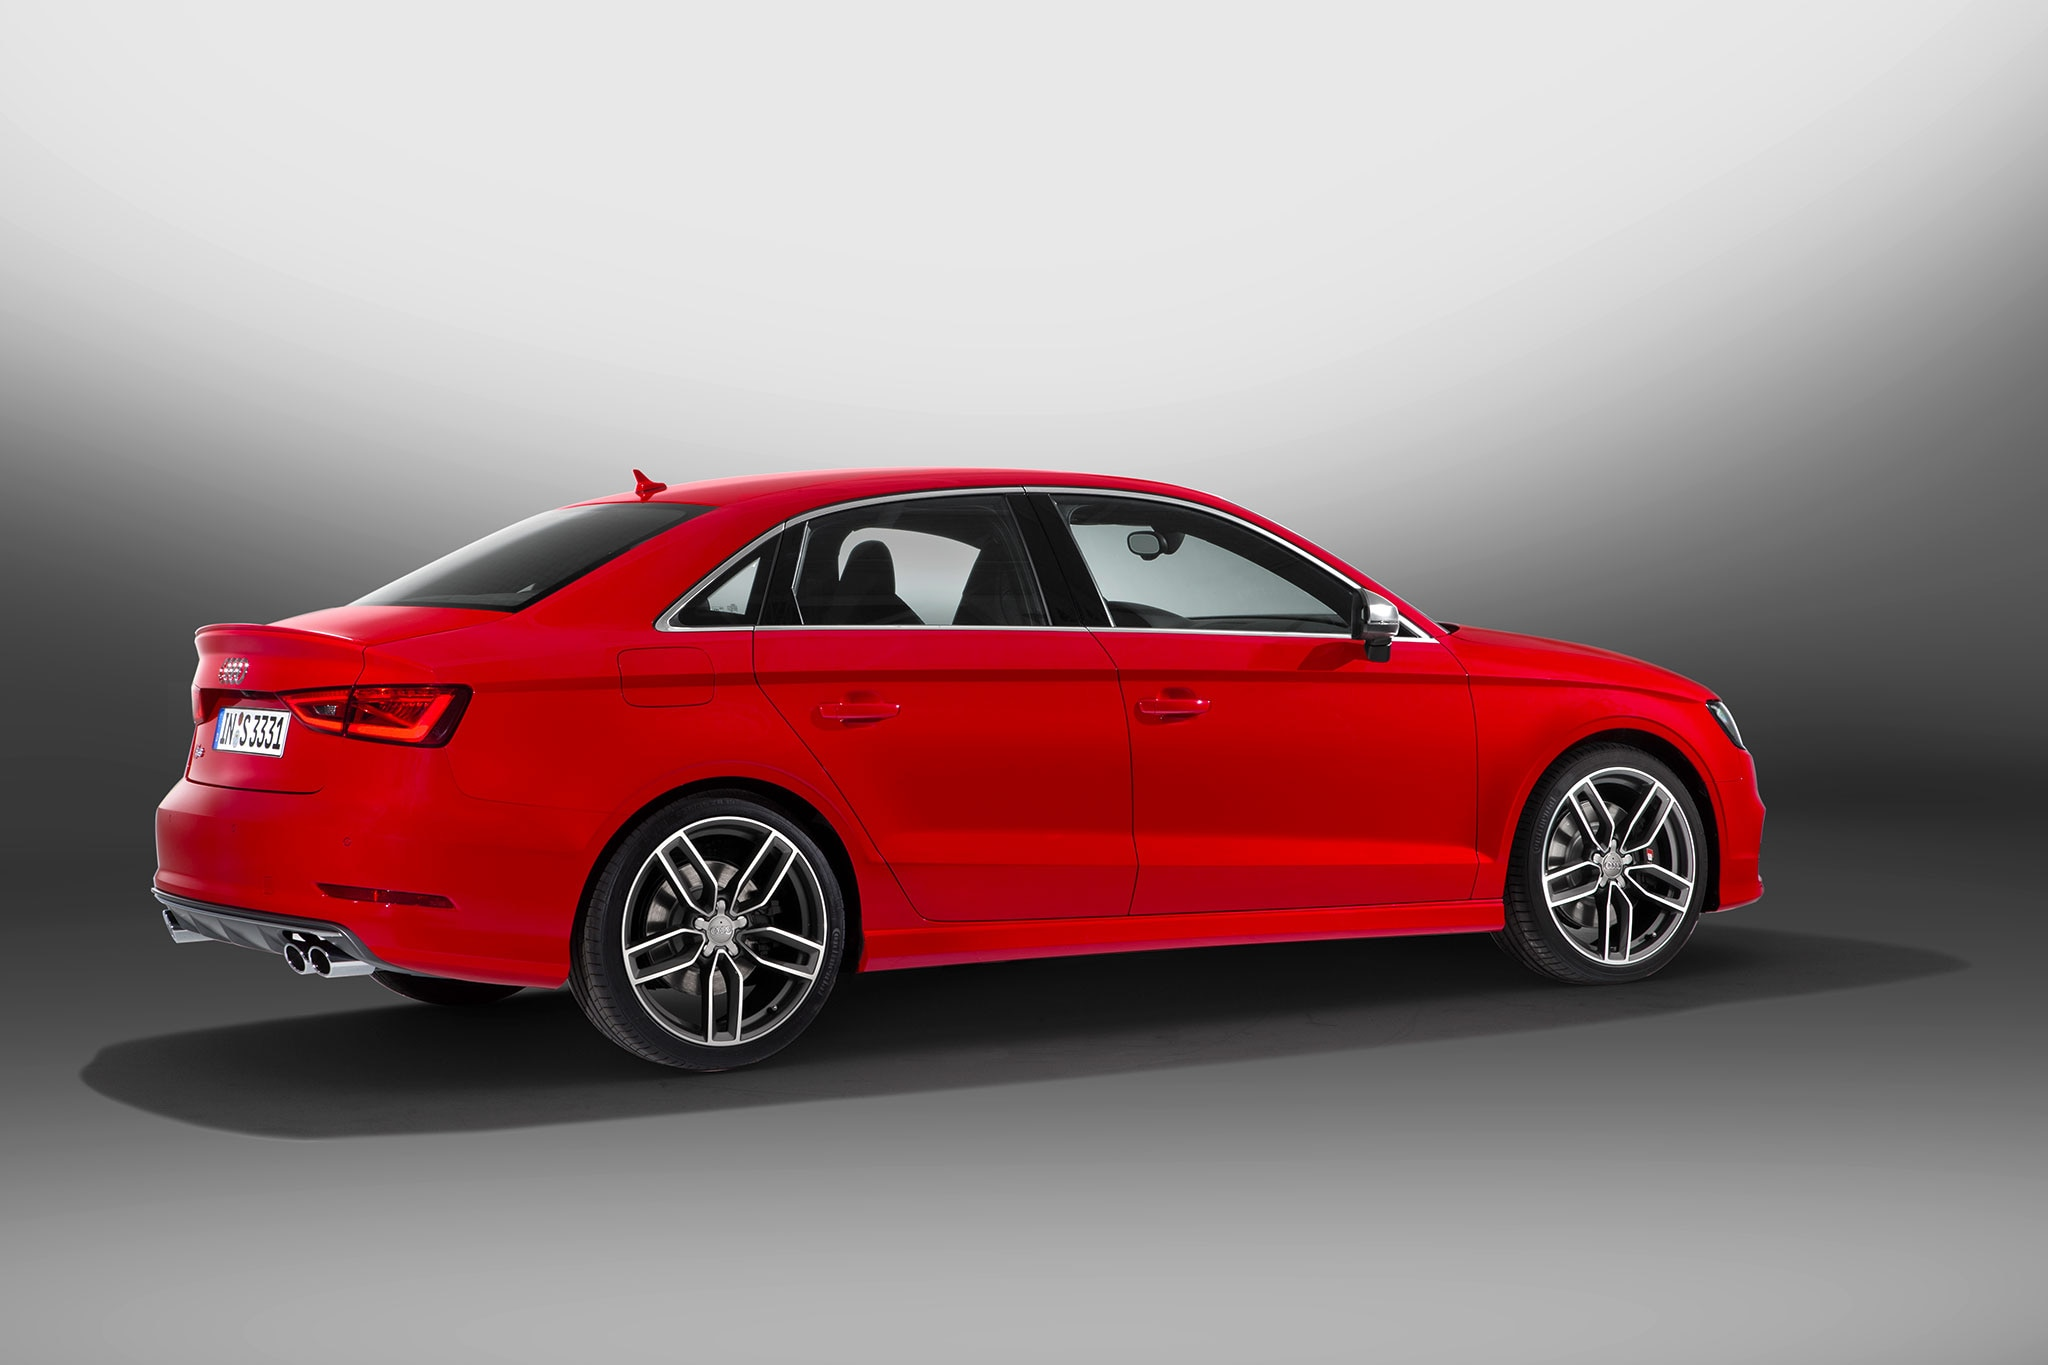 2015 audi a3 tdi a3 cabrio and s3 priced. Black Bedroom Furniture Sets. Home Design Ideas